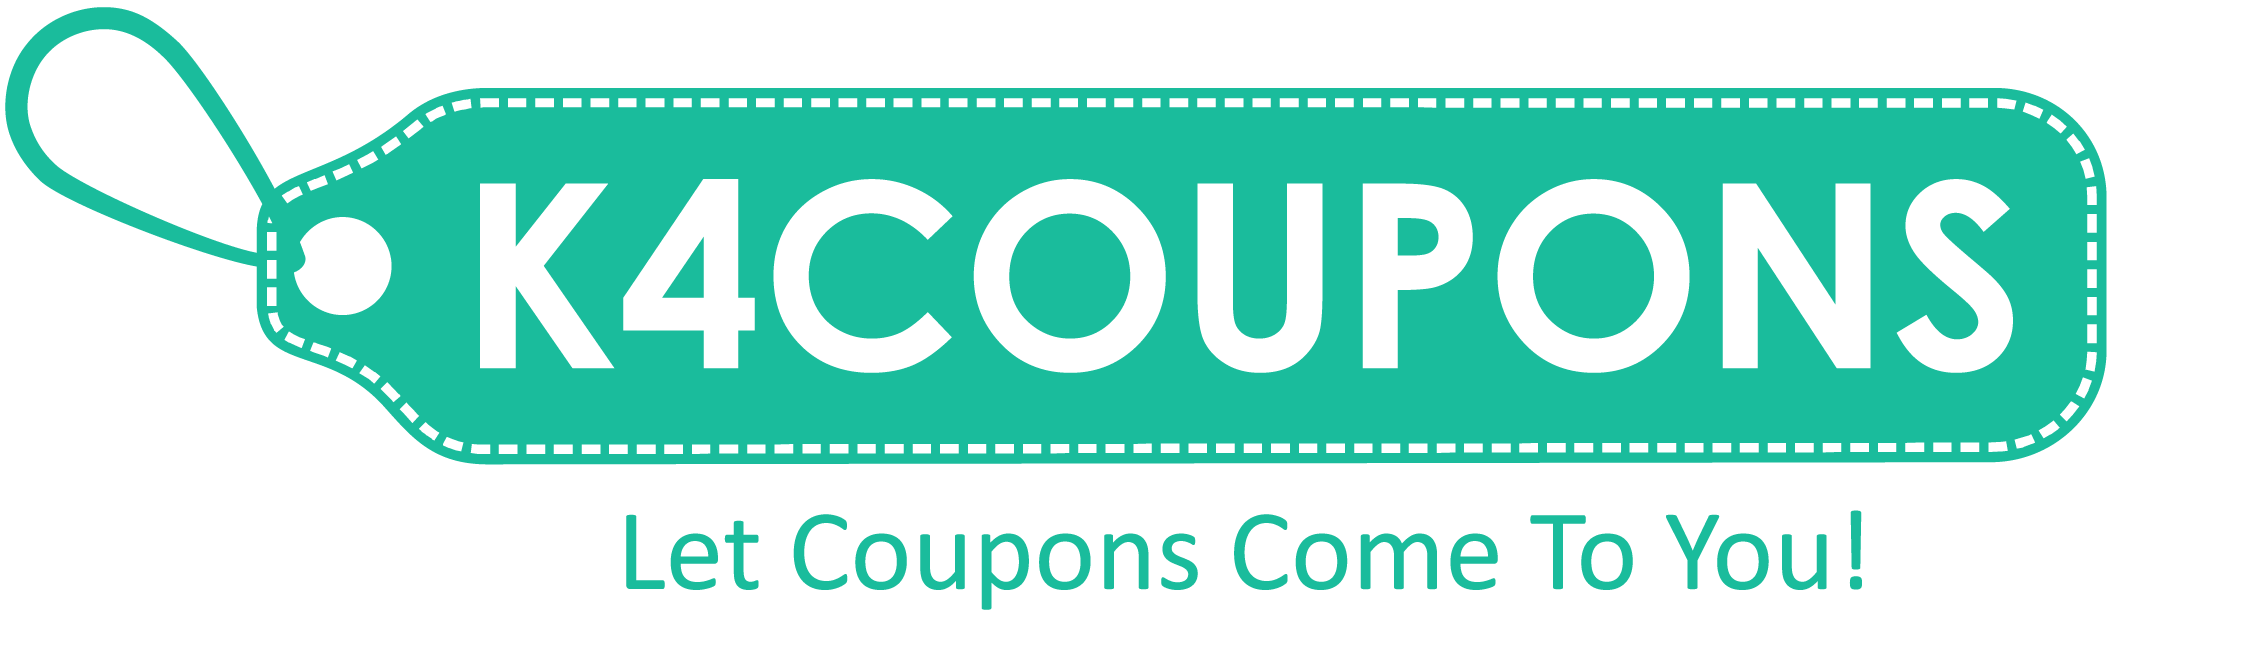 k4coupons Logo